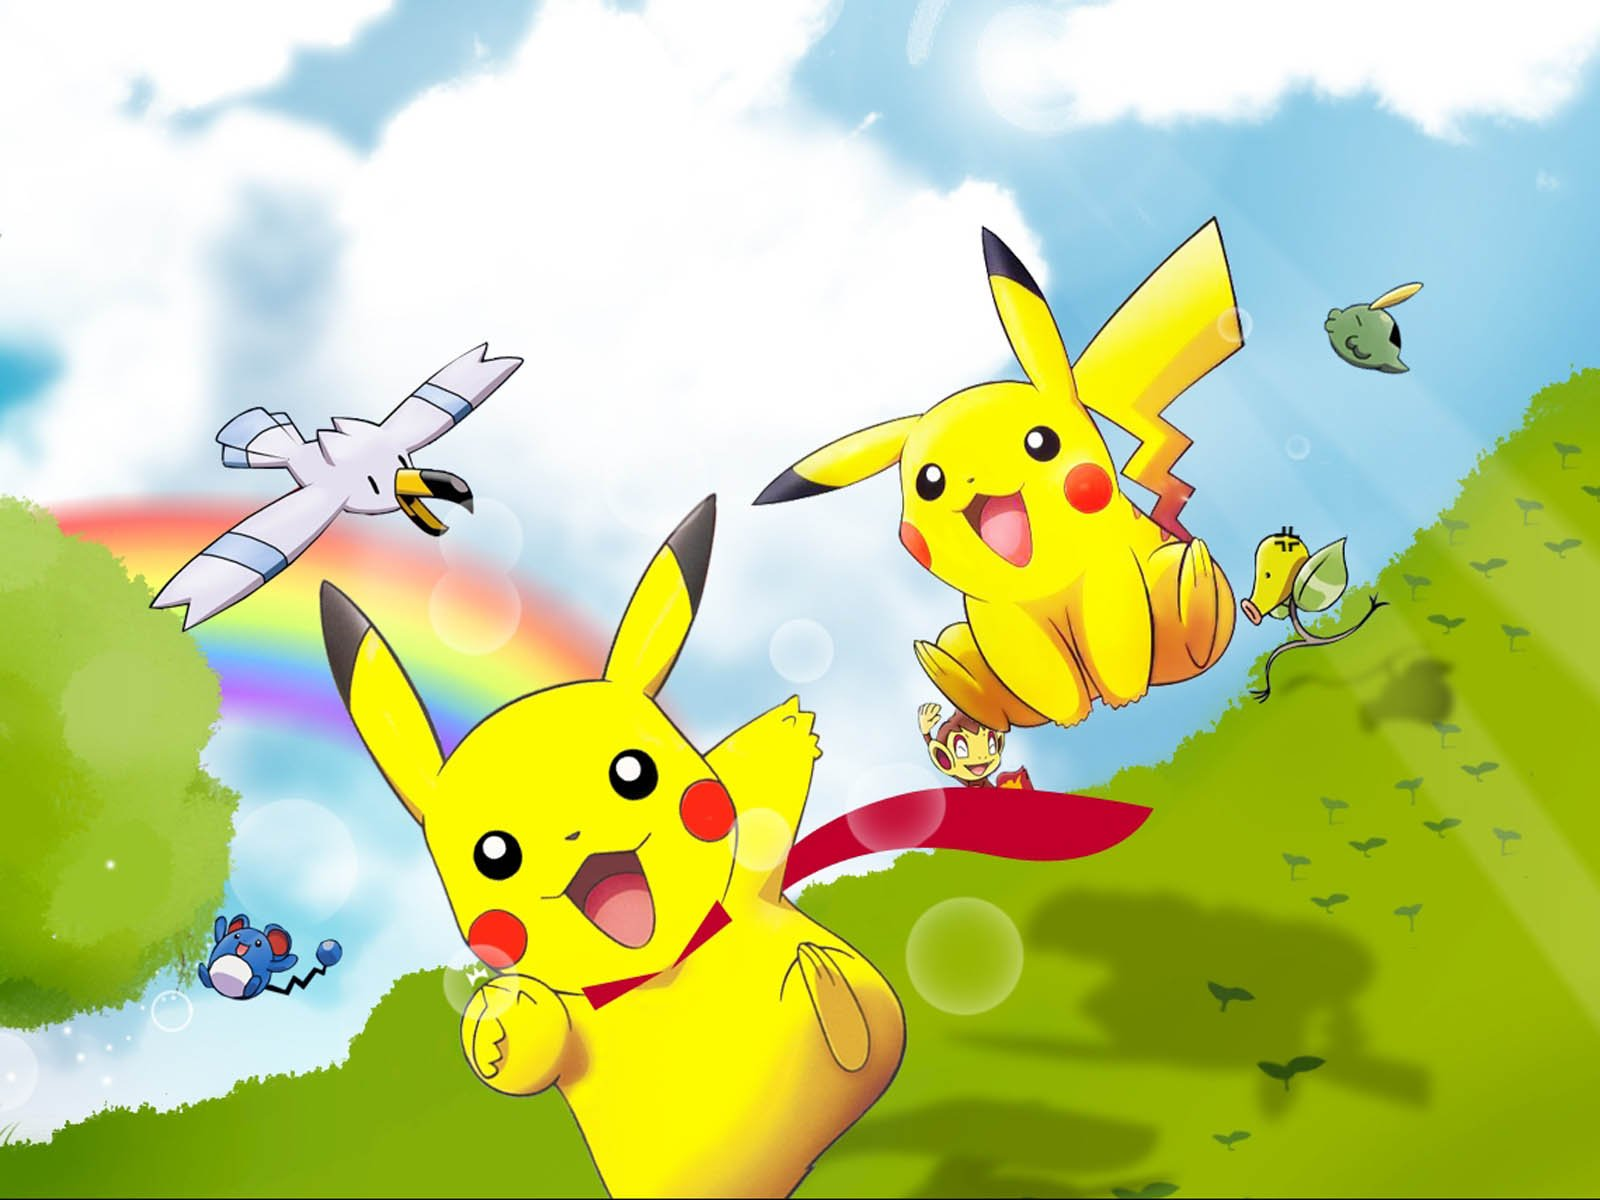 Pikachu Background Wallpapers WIN10 THEMES 1600x1200